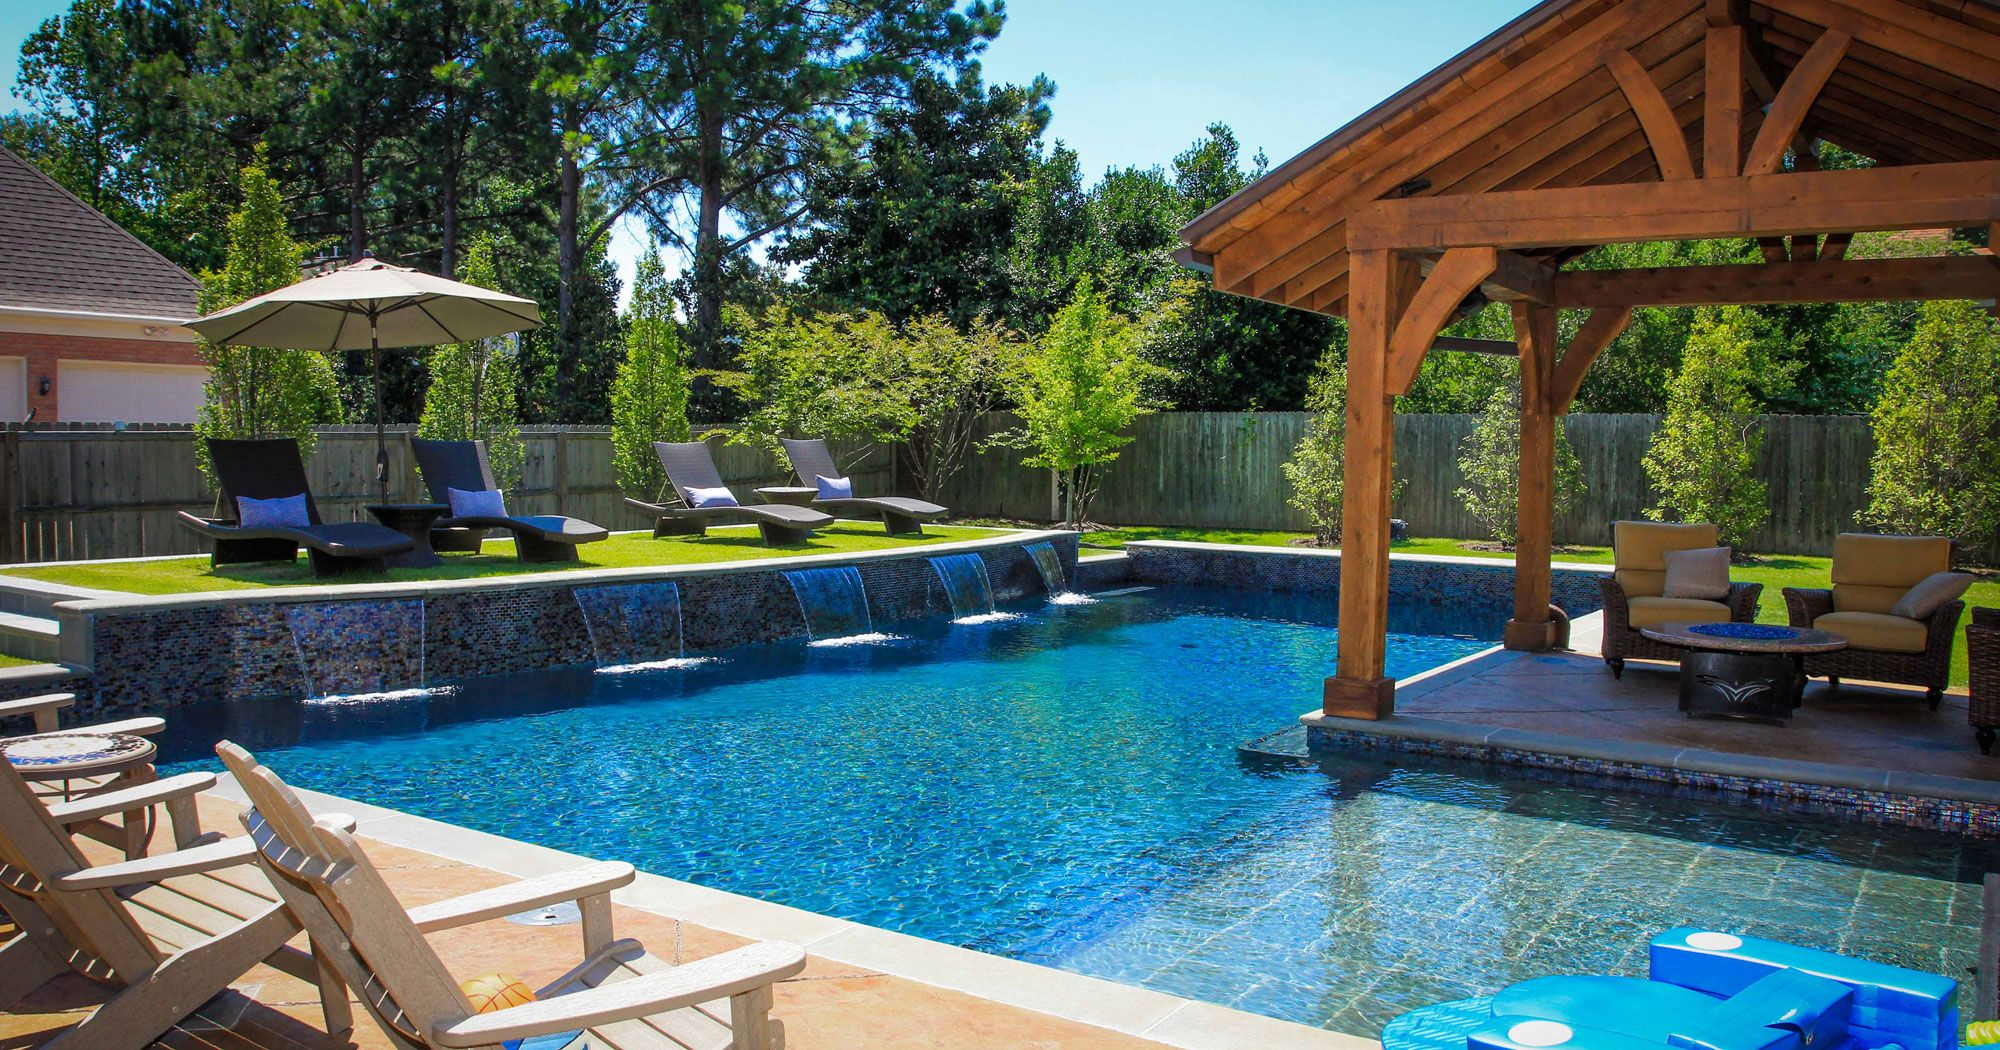 Cool Pool Landscaping Ideas For Backyard Pool Design With Green